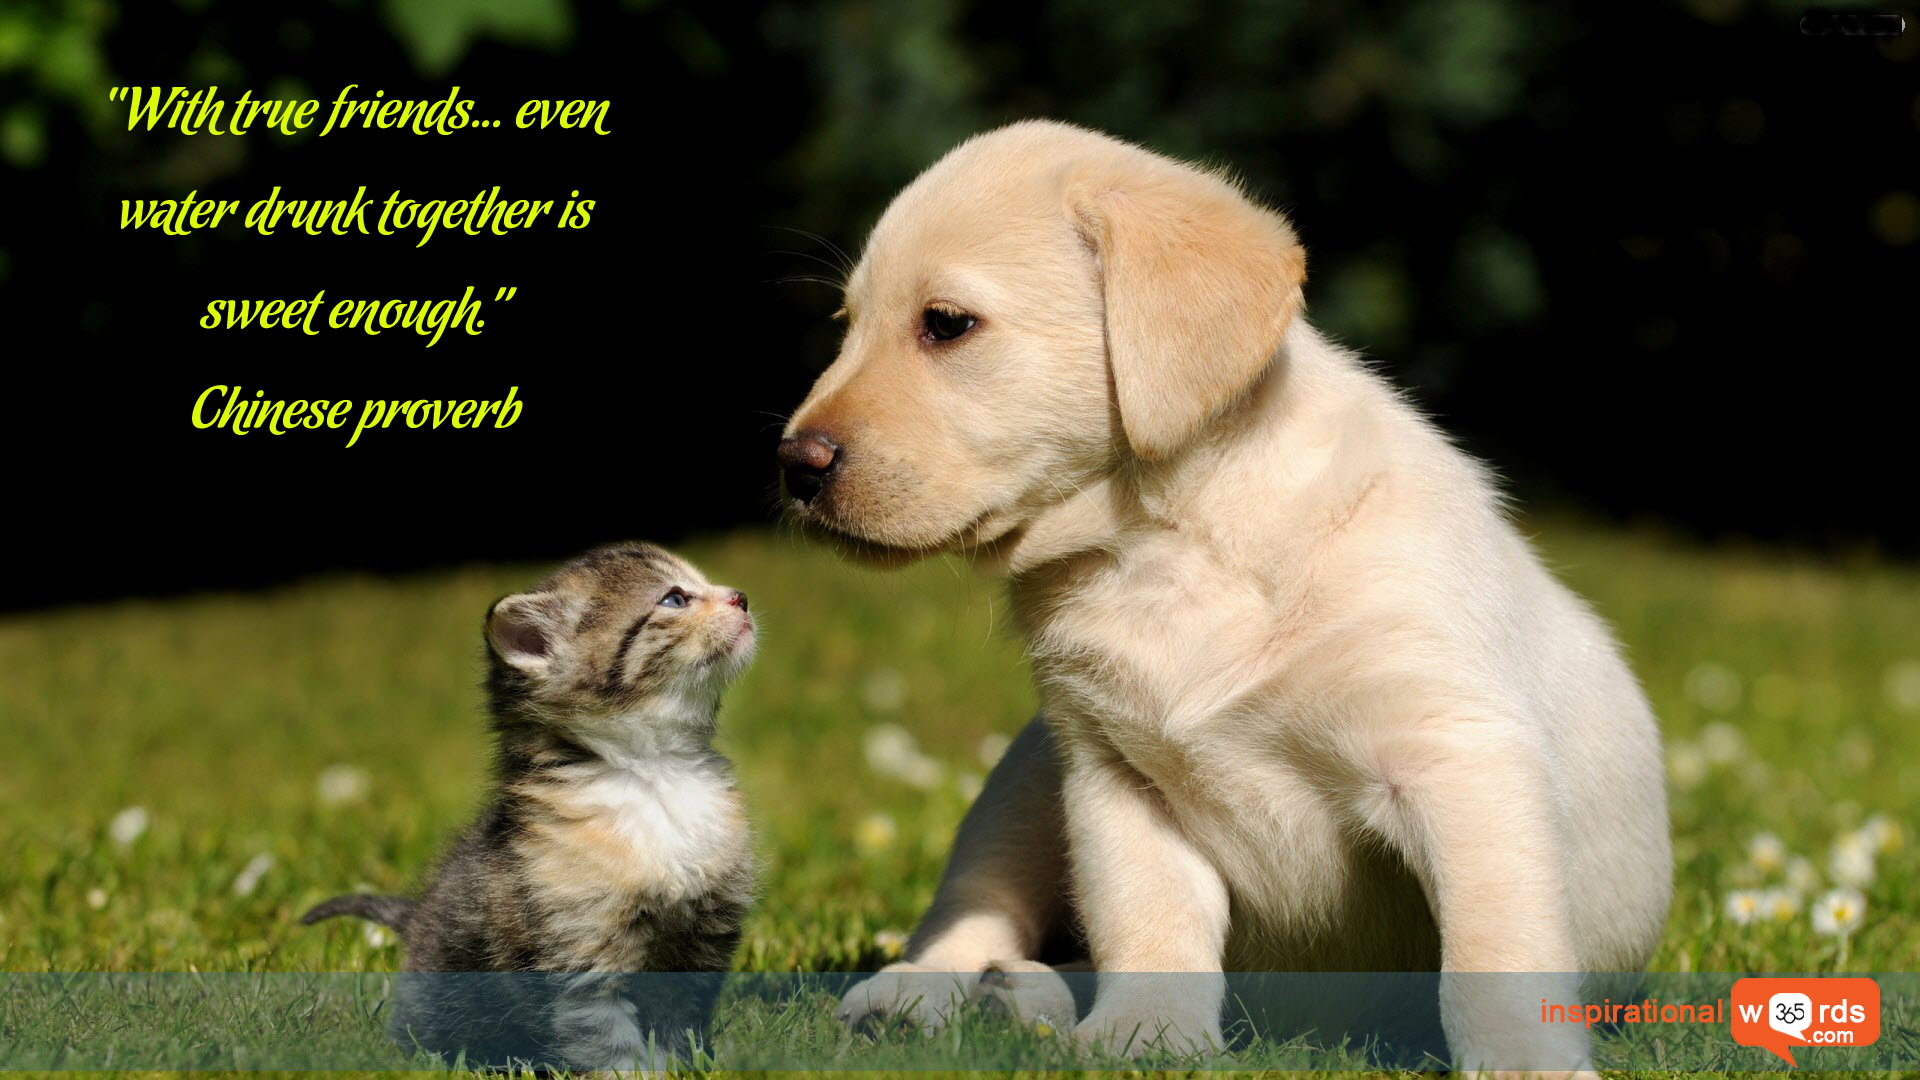 Inspirational Wallpaper Quote. Chinese Proverb